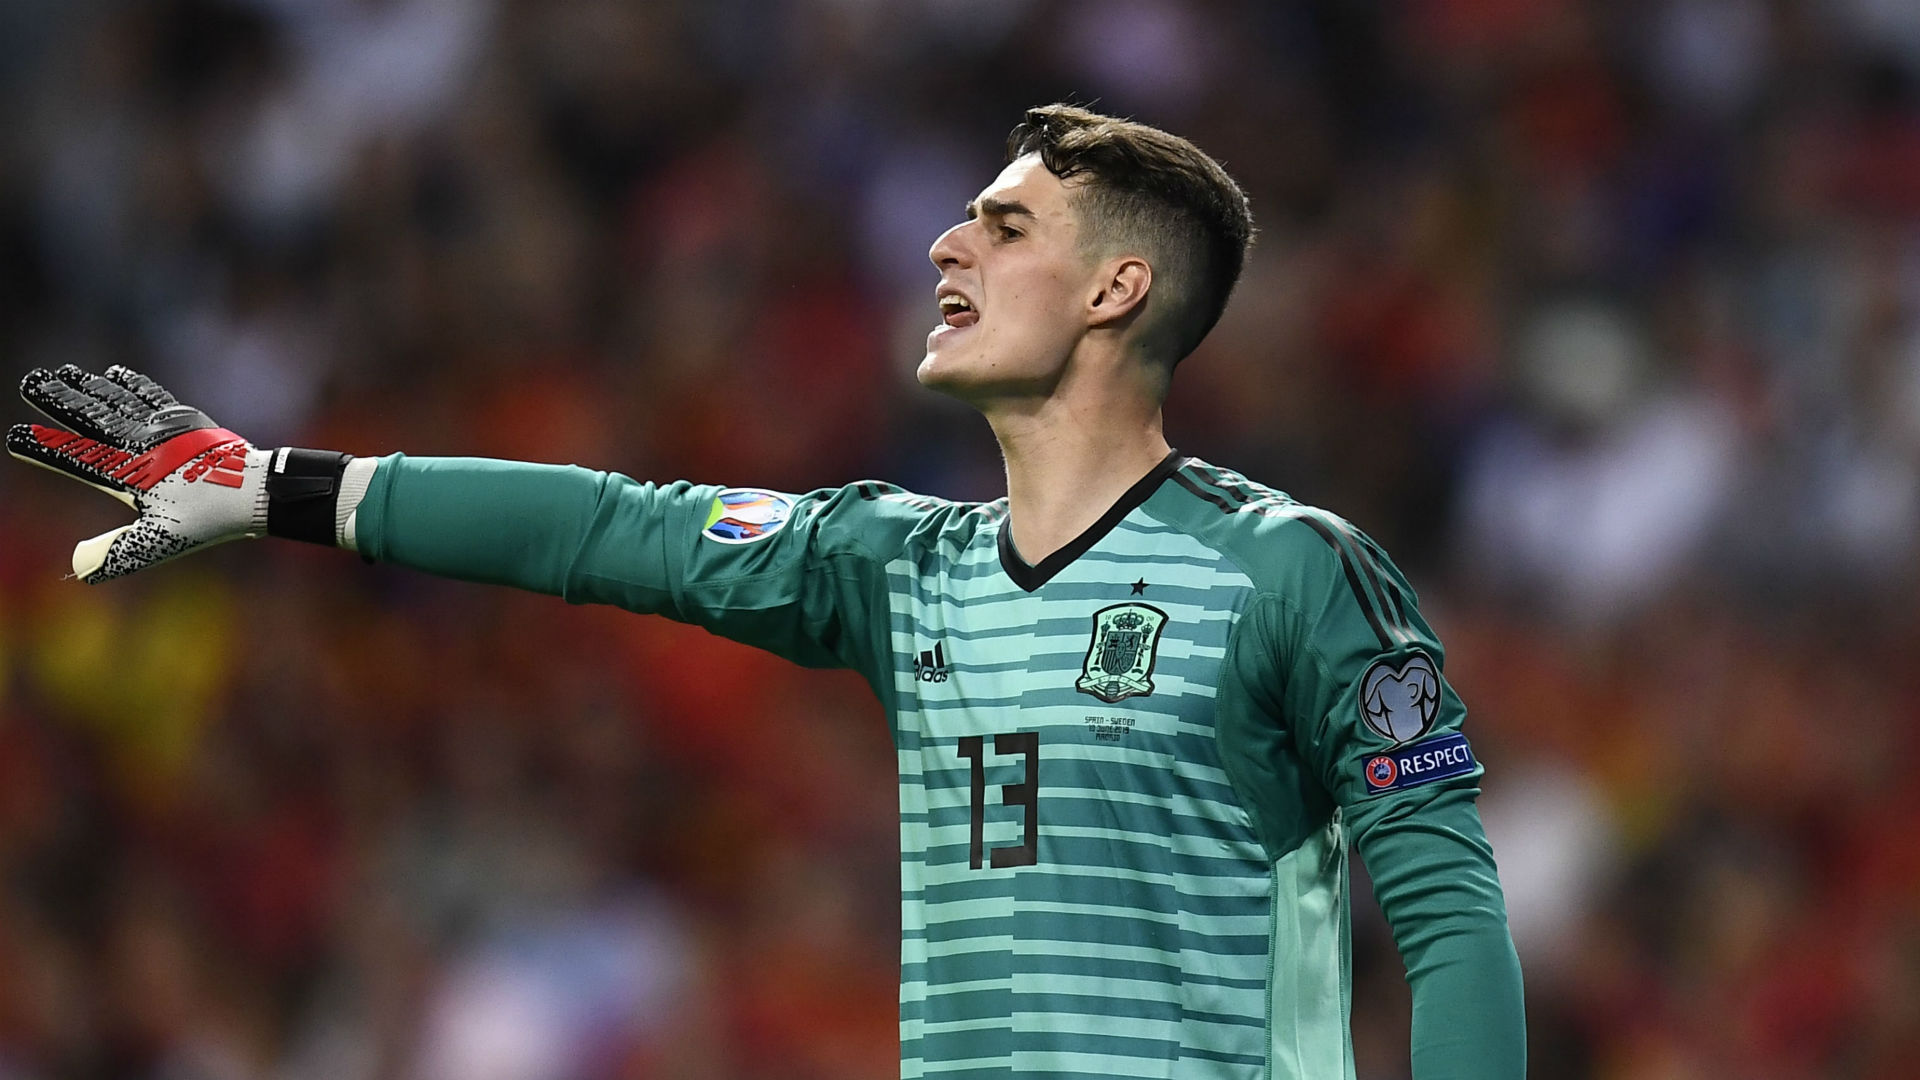 Euro 2020 qualifying: Spain 3-0 Sweden